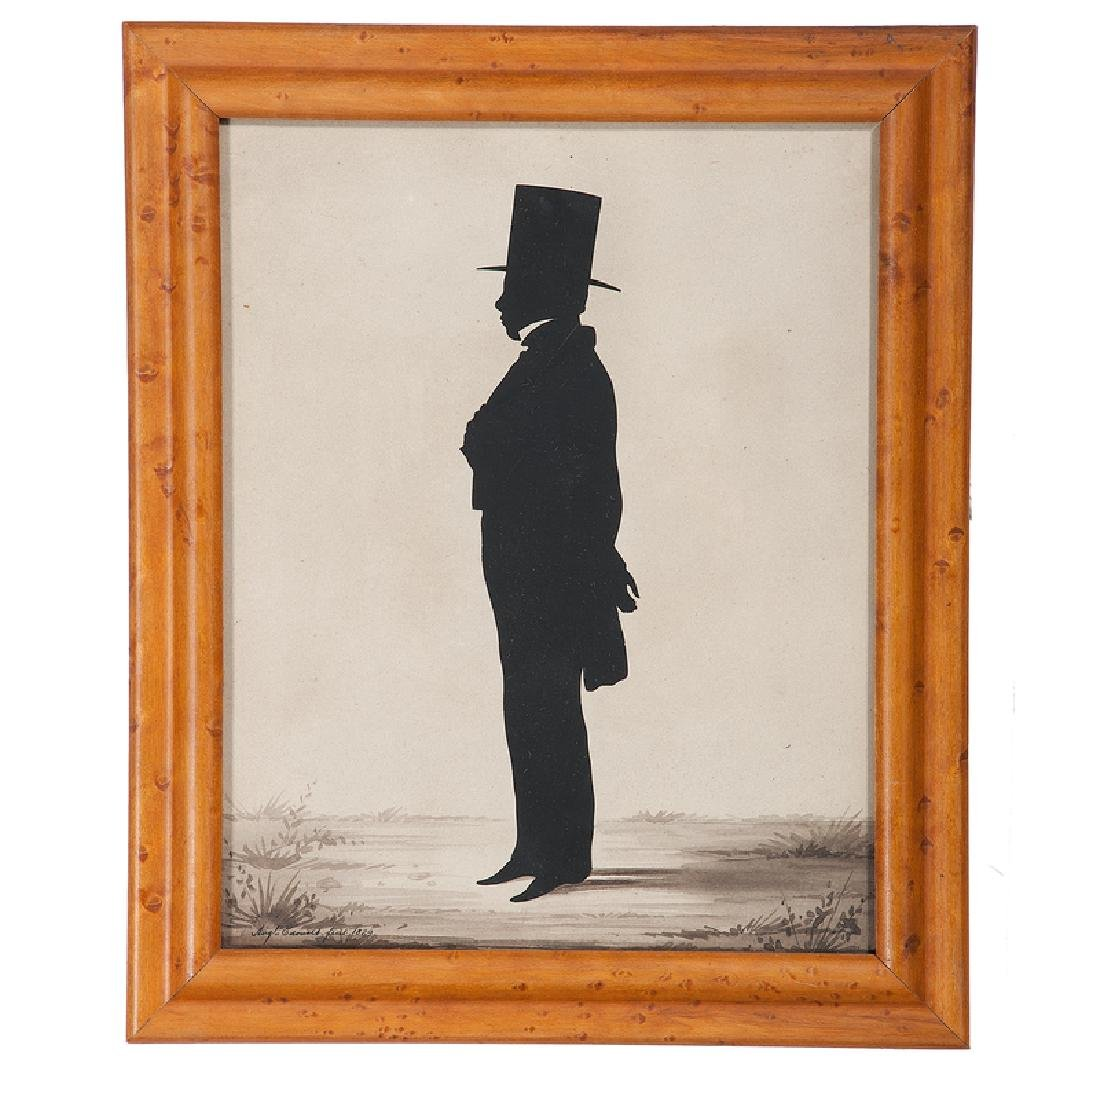 Auguste Edouart, Silhouette of a Gentleman